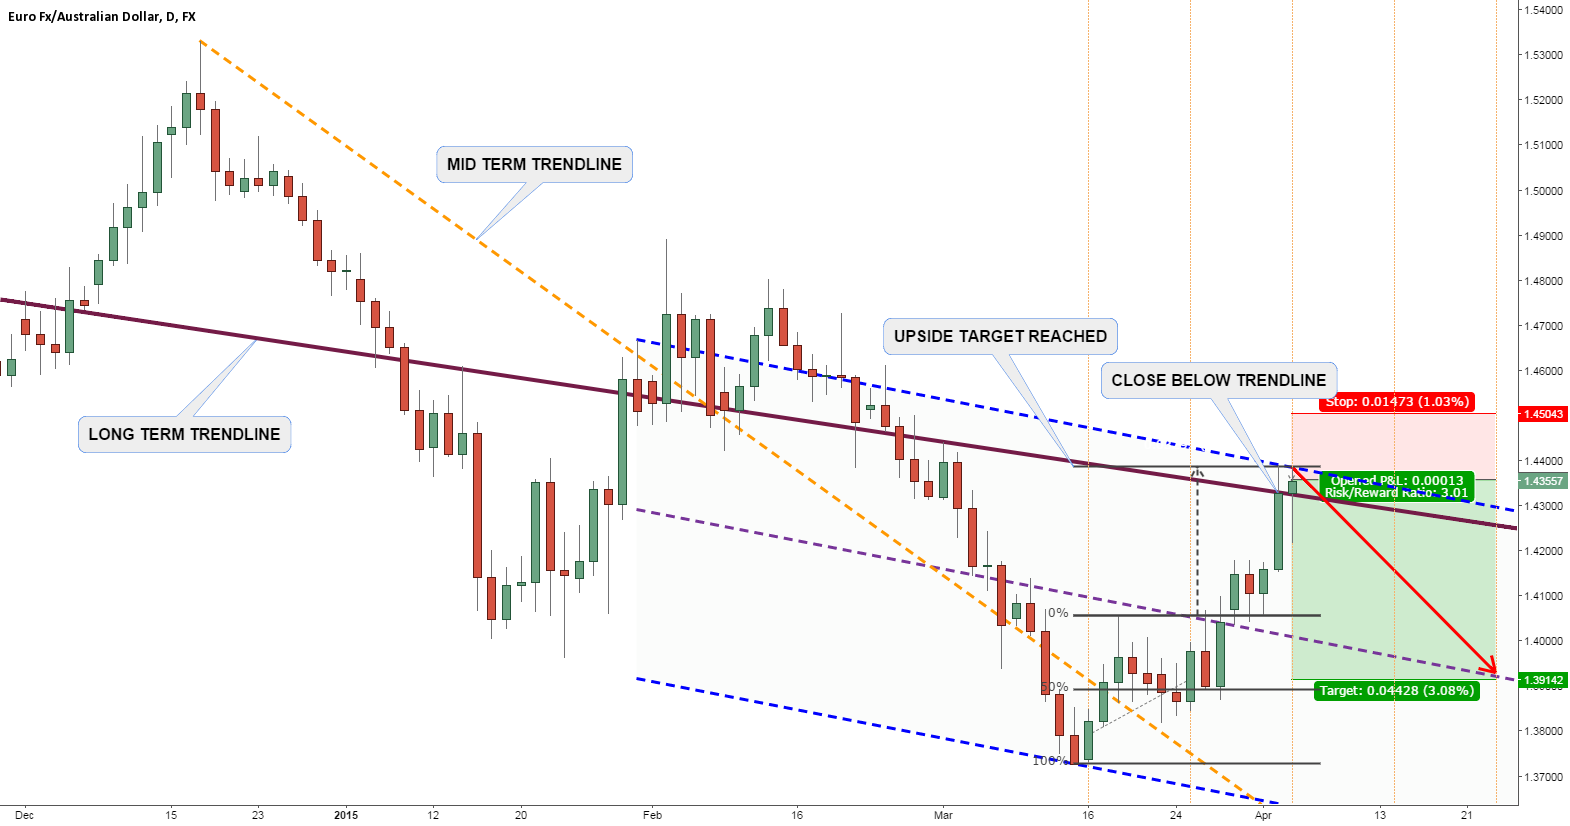 EURAUD DOWNTREND CONTINUES